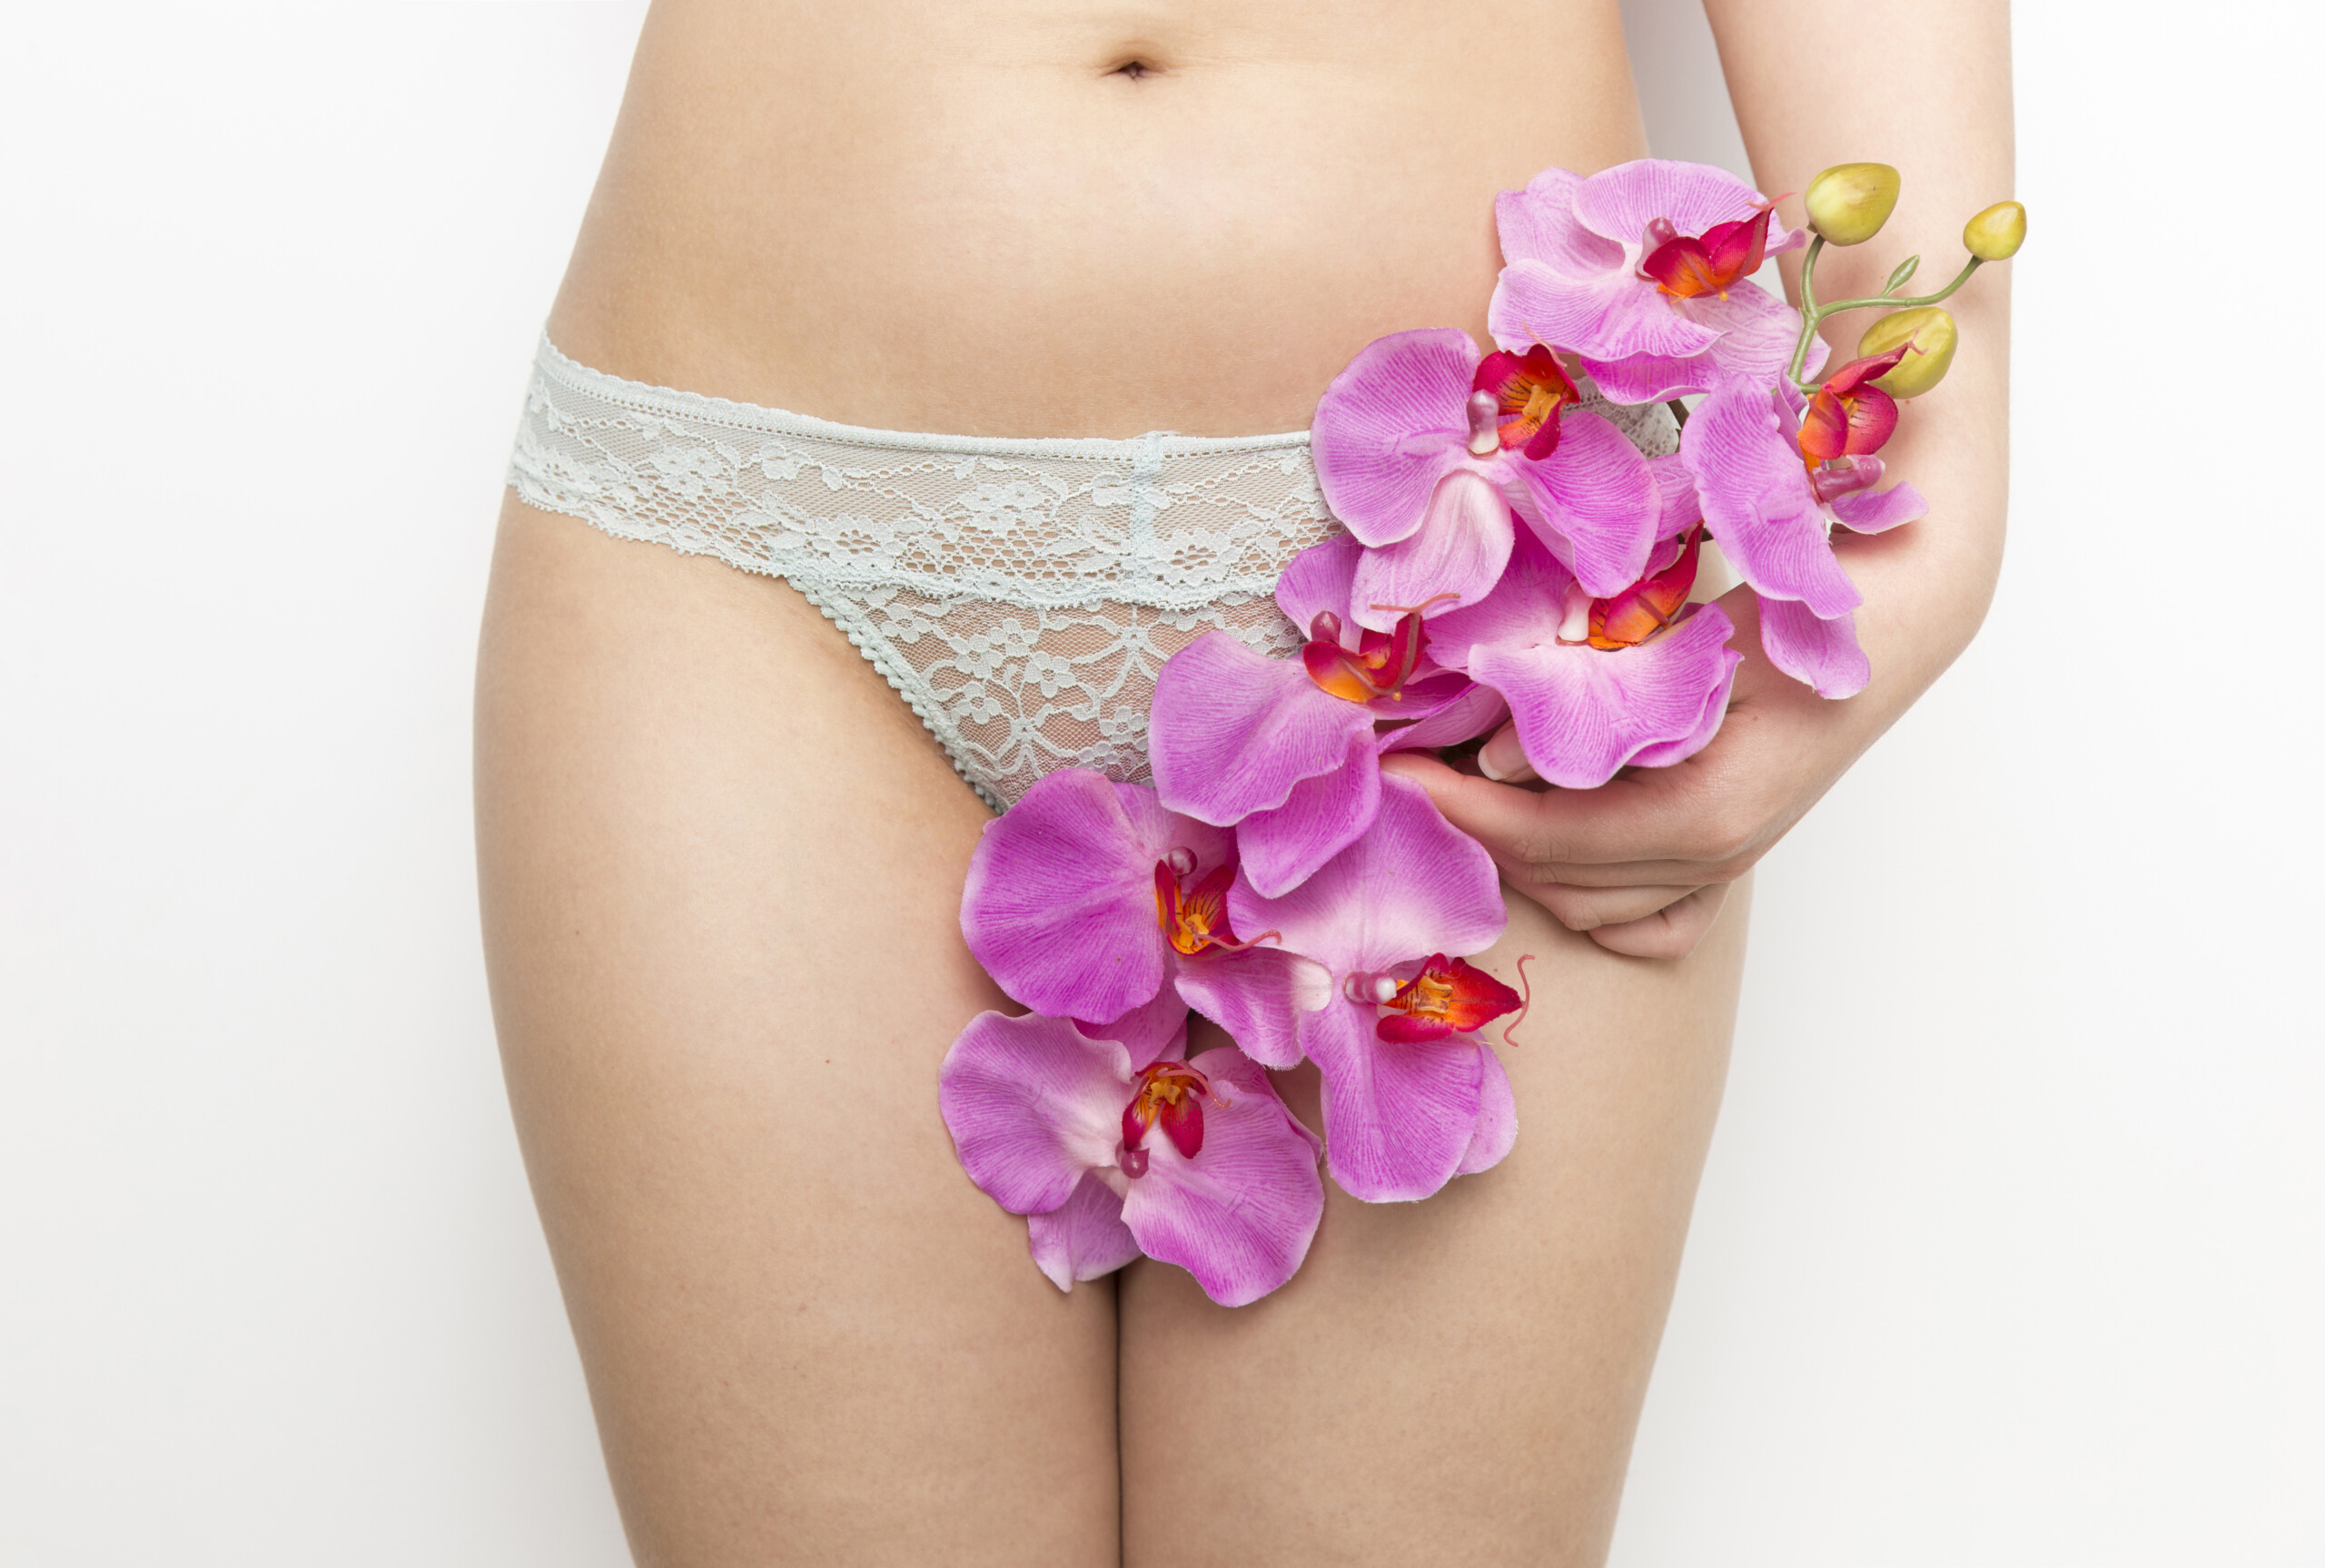 Why Sex Can Make a Woman's Bladder Feel Full